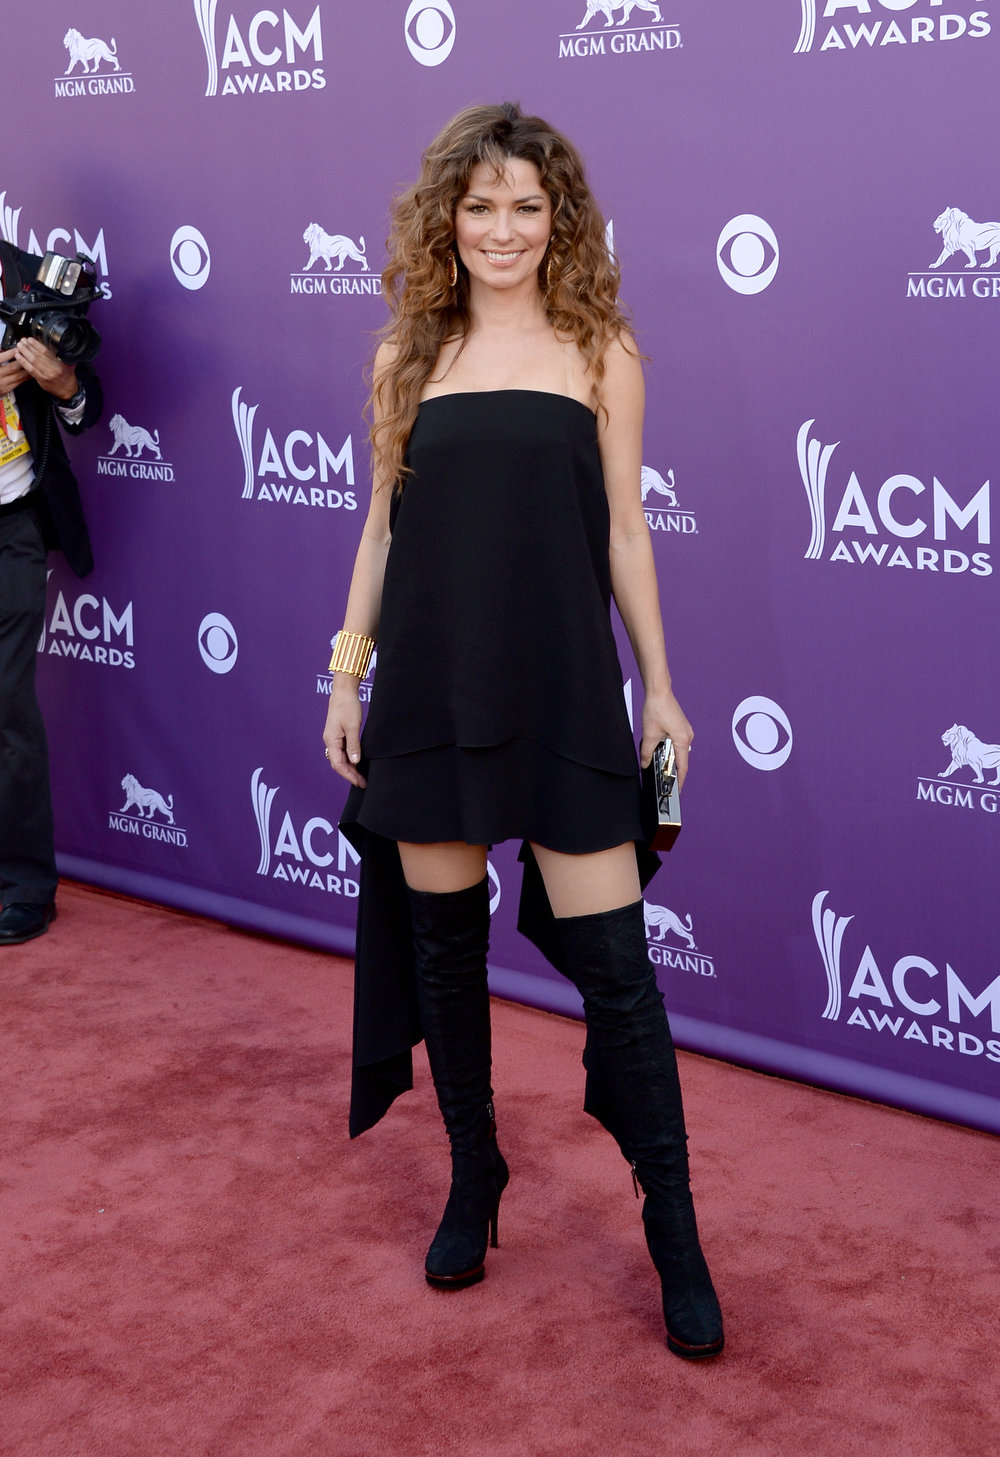 . Musician Shania Twain arrives at the 48th Annual Academy of Country Music Awards at the MGM Grand Garden Arena on April 7, 2013 in Las Vegas, Nevada.  (Photo by Jason Merritt/Getty Images)